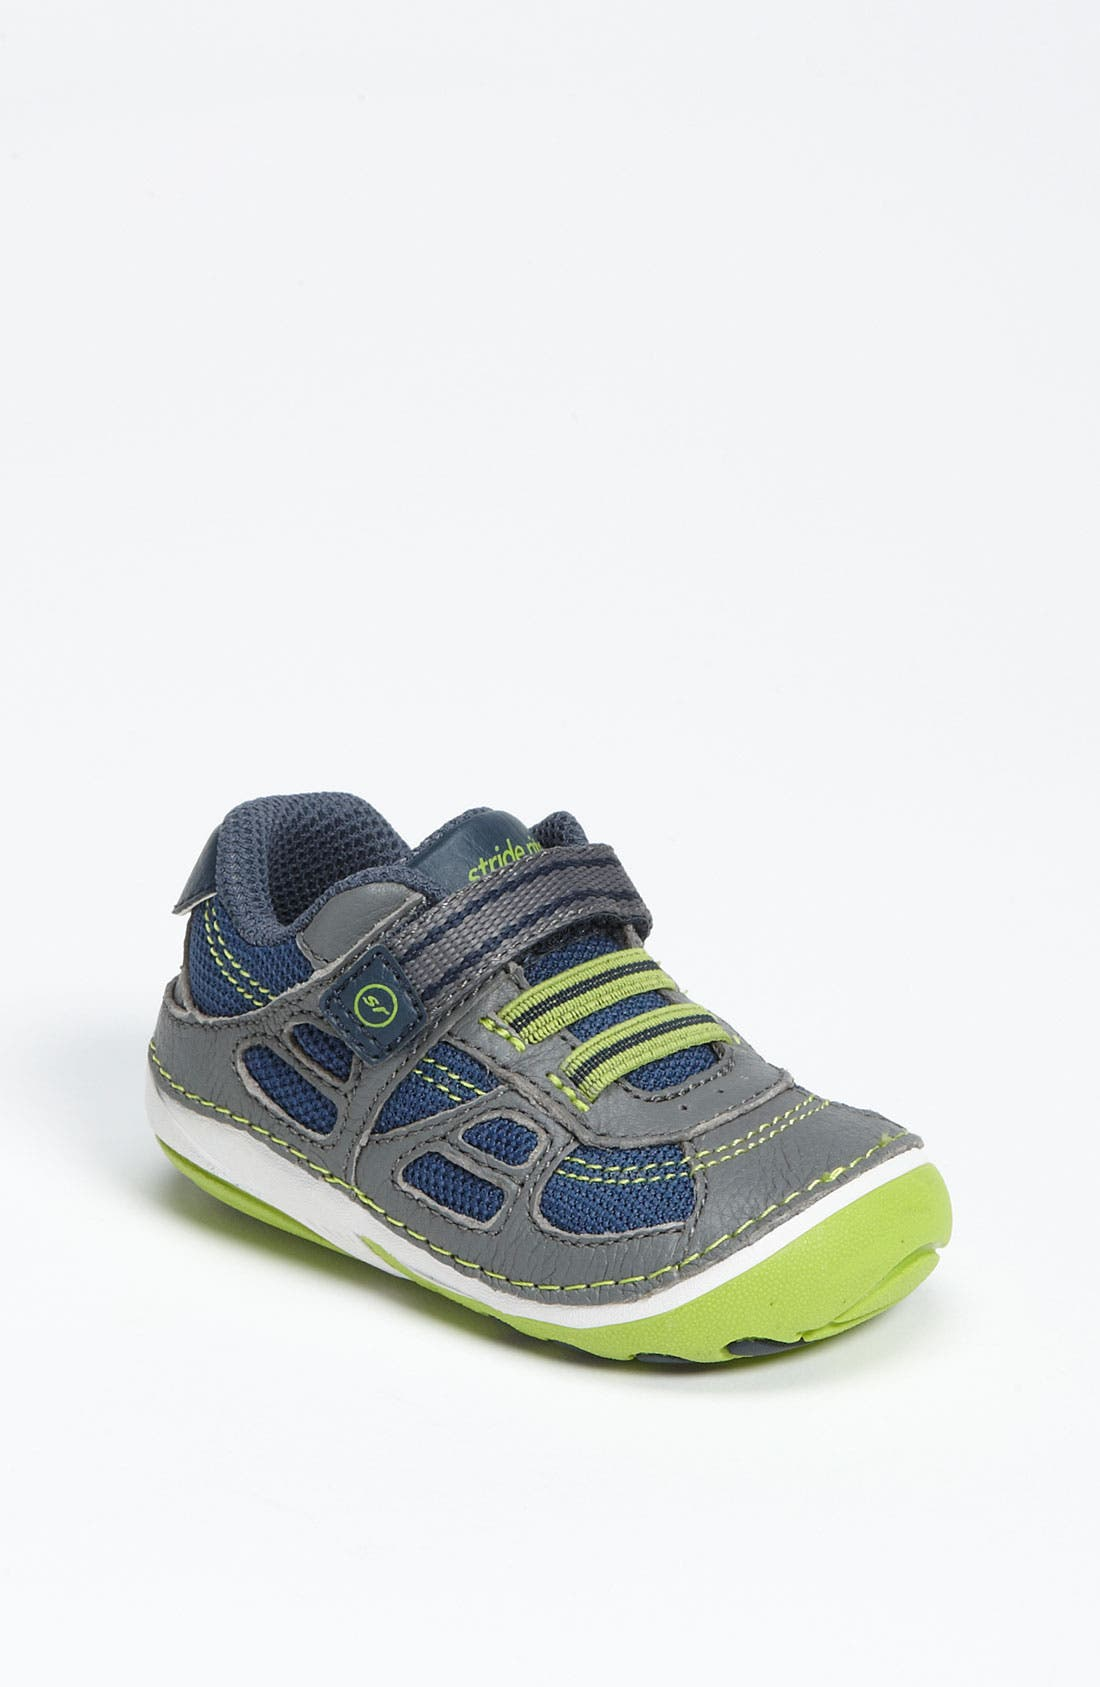 Alternate Image 1 Selected - Stride Rite 'Conner' Sneaker (Baby & Walker)